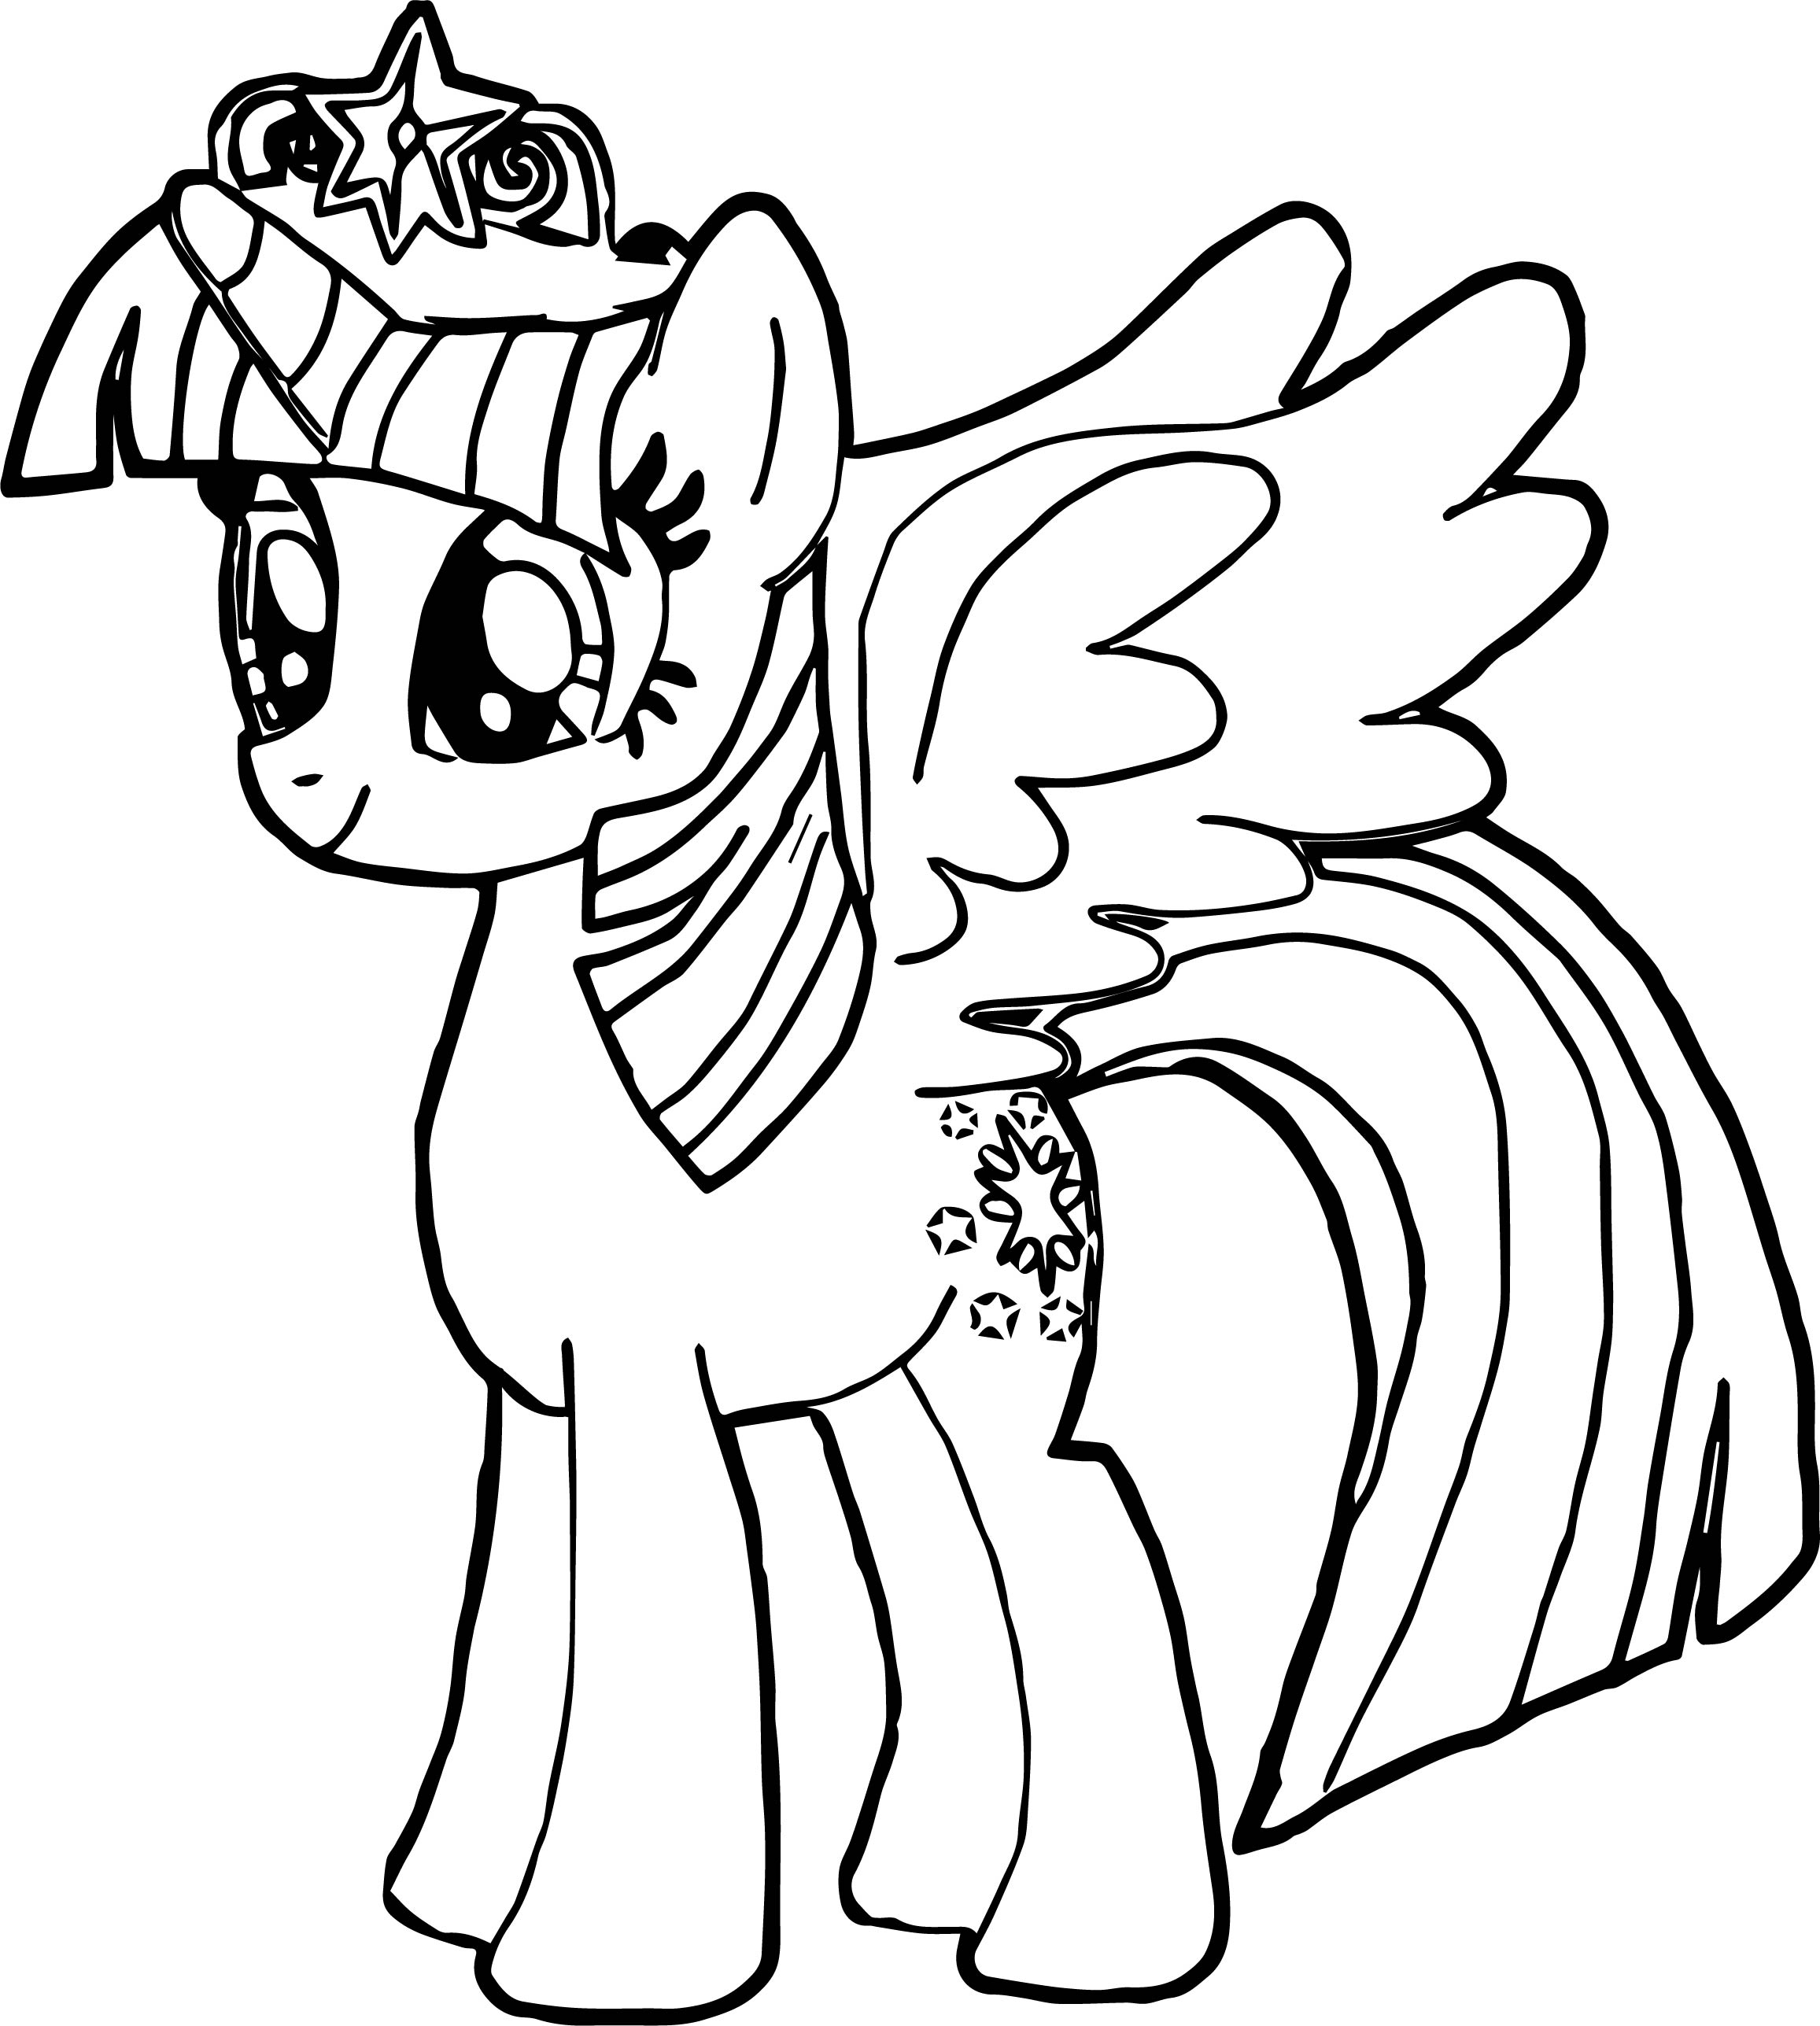 coloring pages twilight sparkle coloring fun twilight sparkle sparkle coloring pages twilight